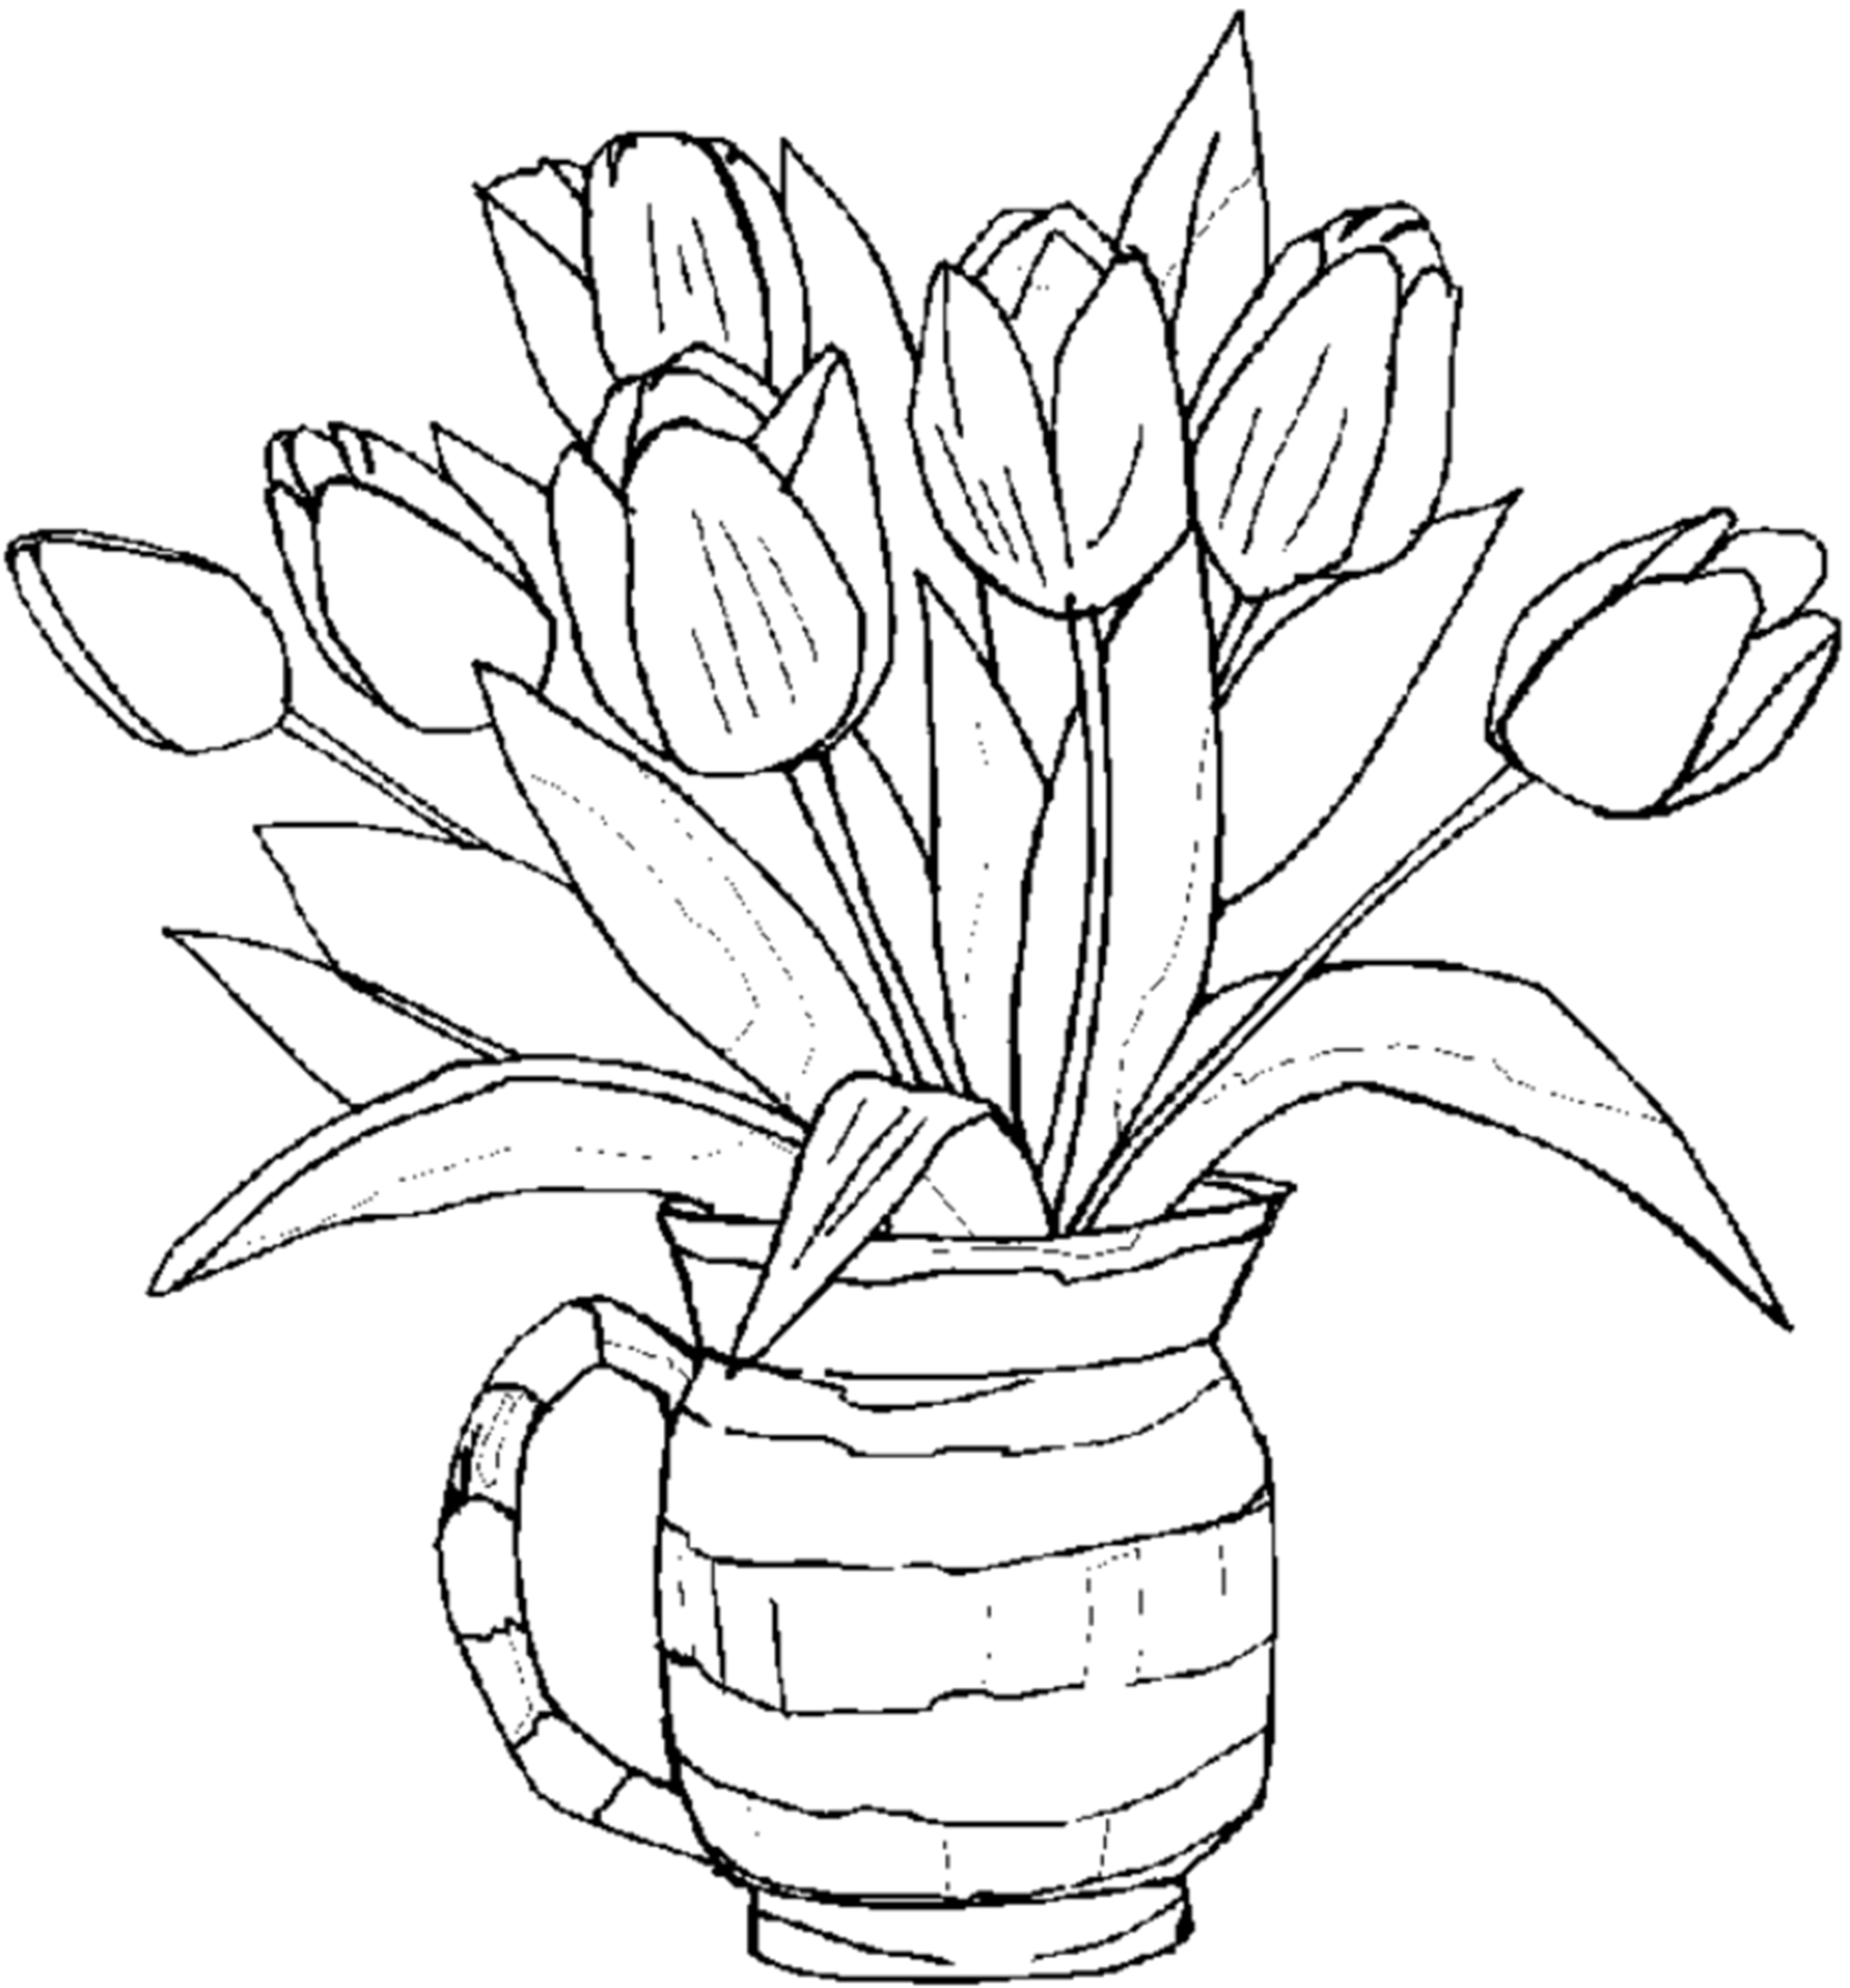 pictures of flowers to color floral coloring pages for adults best coloring pages for pictures to of flowers color